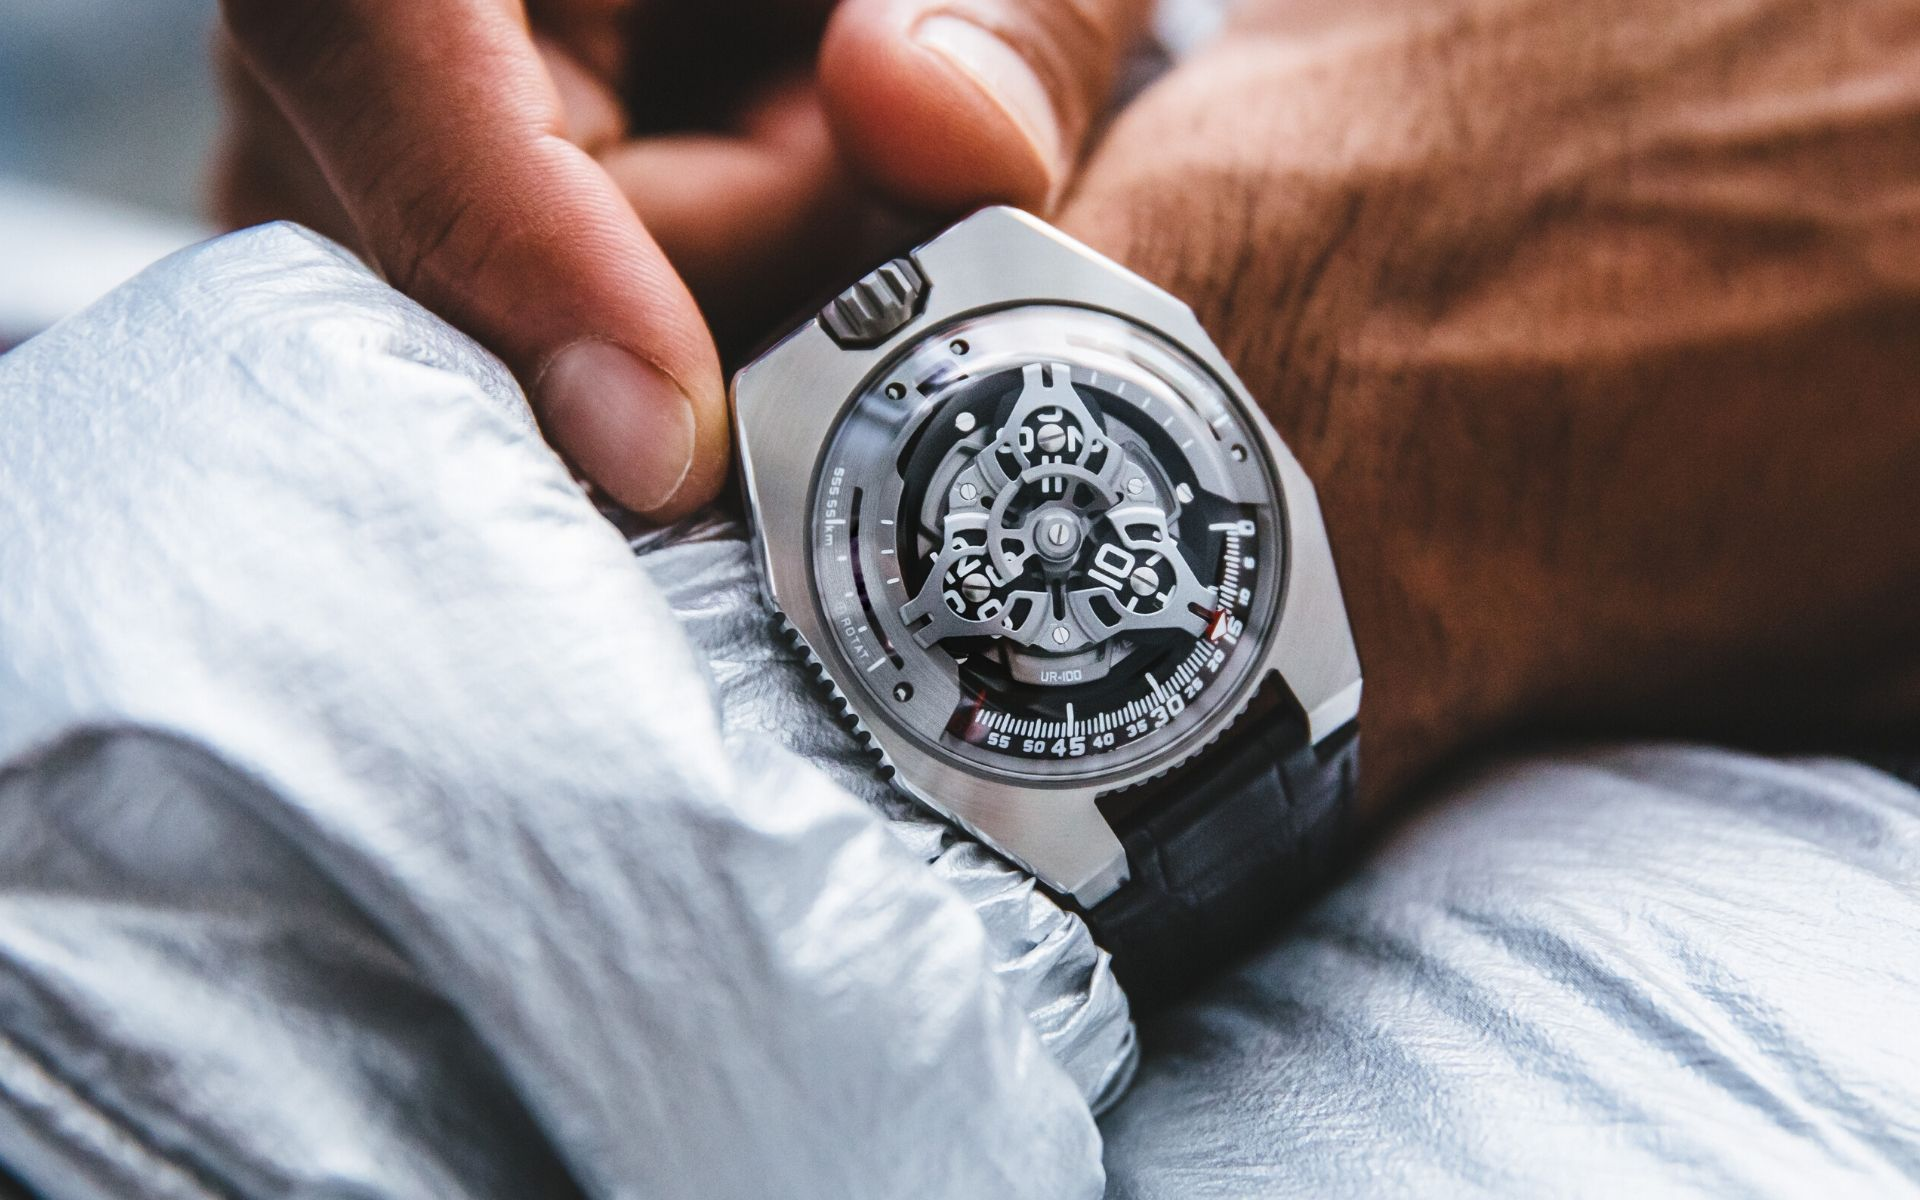 The Urwerk UR-100 SpaceTime Watch Measures Distance Travelled On Earth - And By Earth